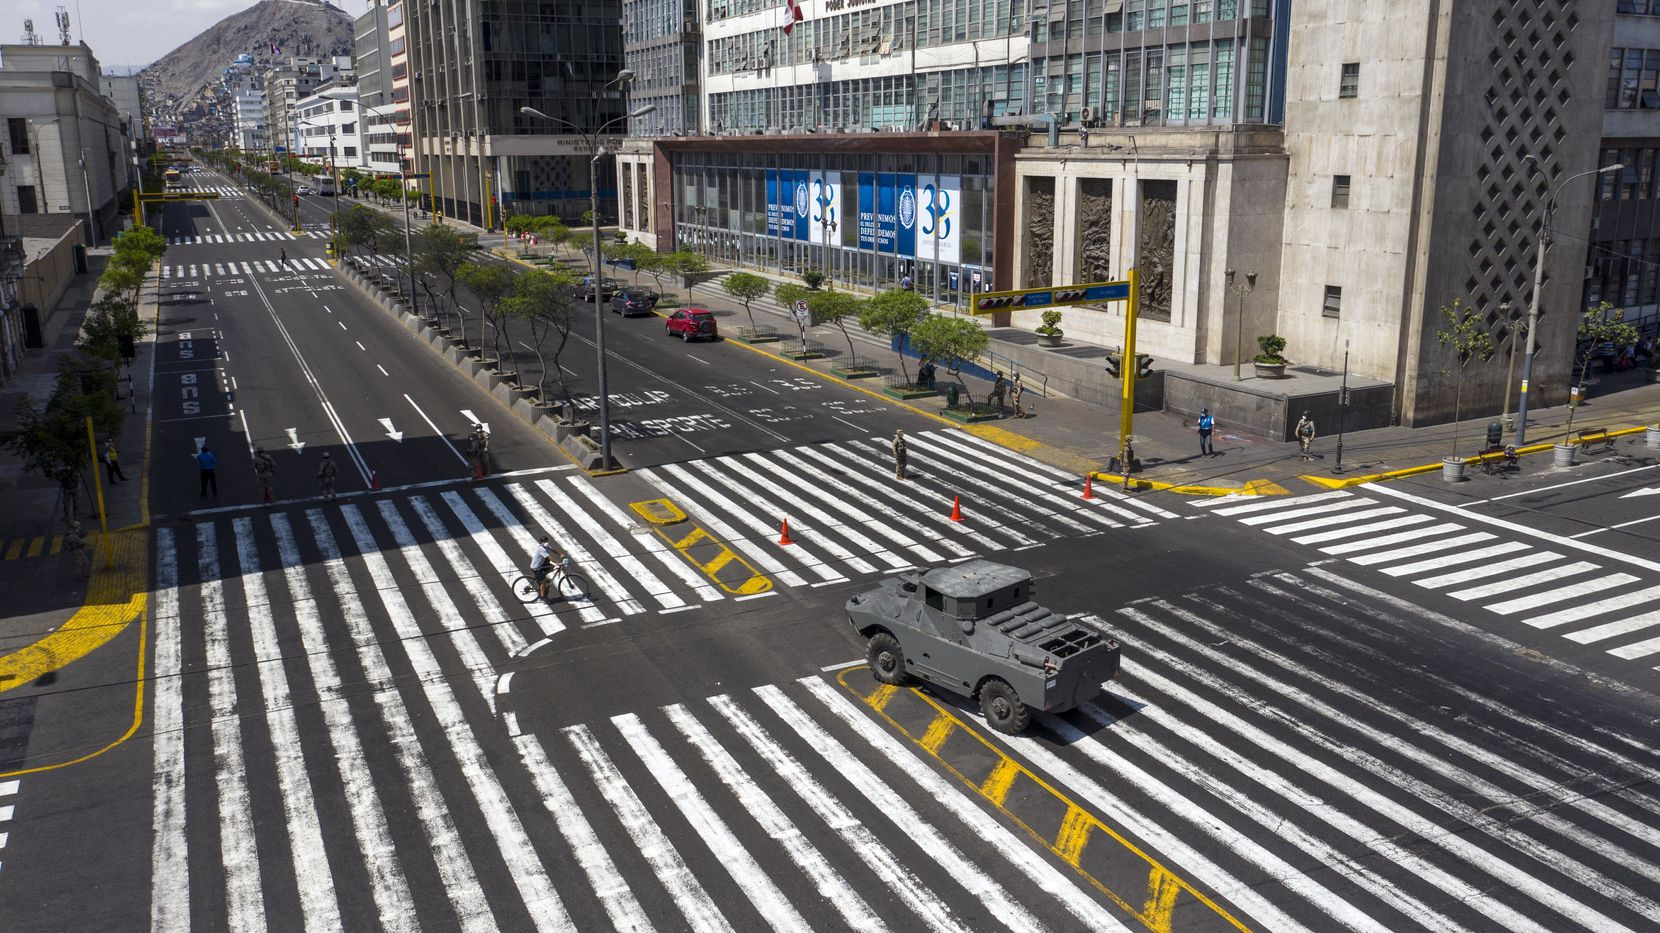 An armored vehicle guards an intersection on Abancay Avenue after the government implemented restrictions to prevent the spread of the new coronavirus in Lima, Peru, on March 18, 2020. (Rodrigo Abd/The Associated Press)